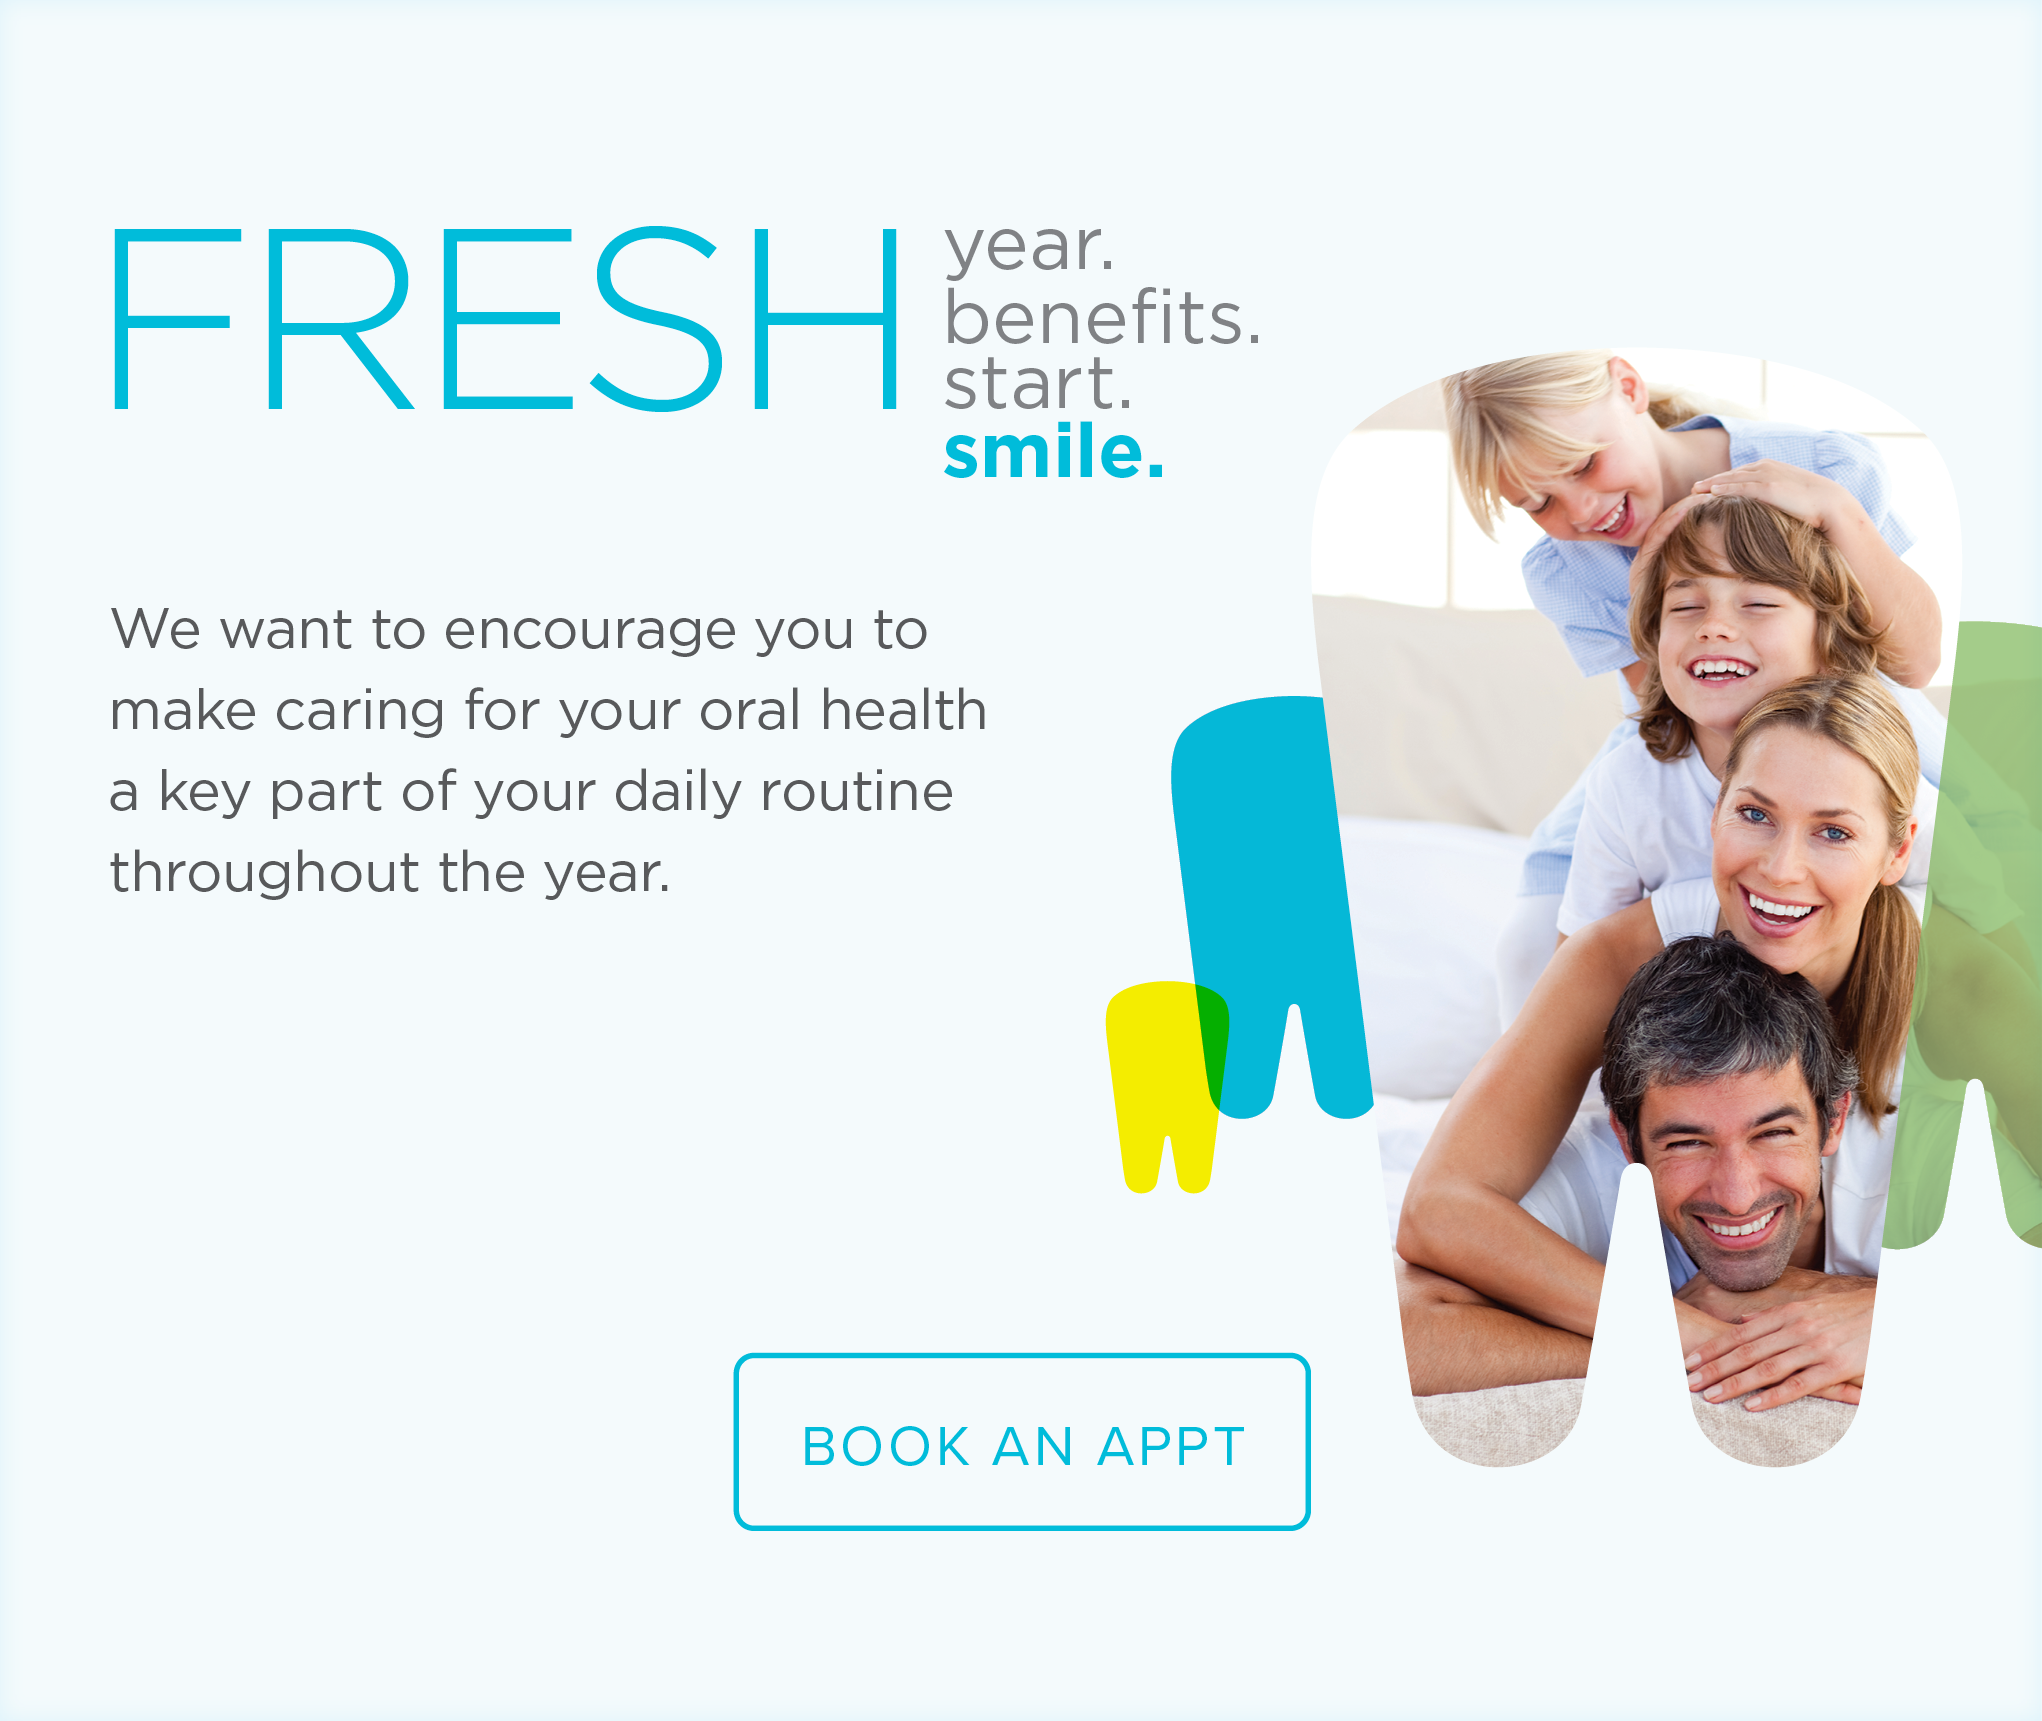 Desert Valley Dental Group and Orthodontics - Make the Most of Your Benefits